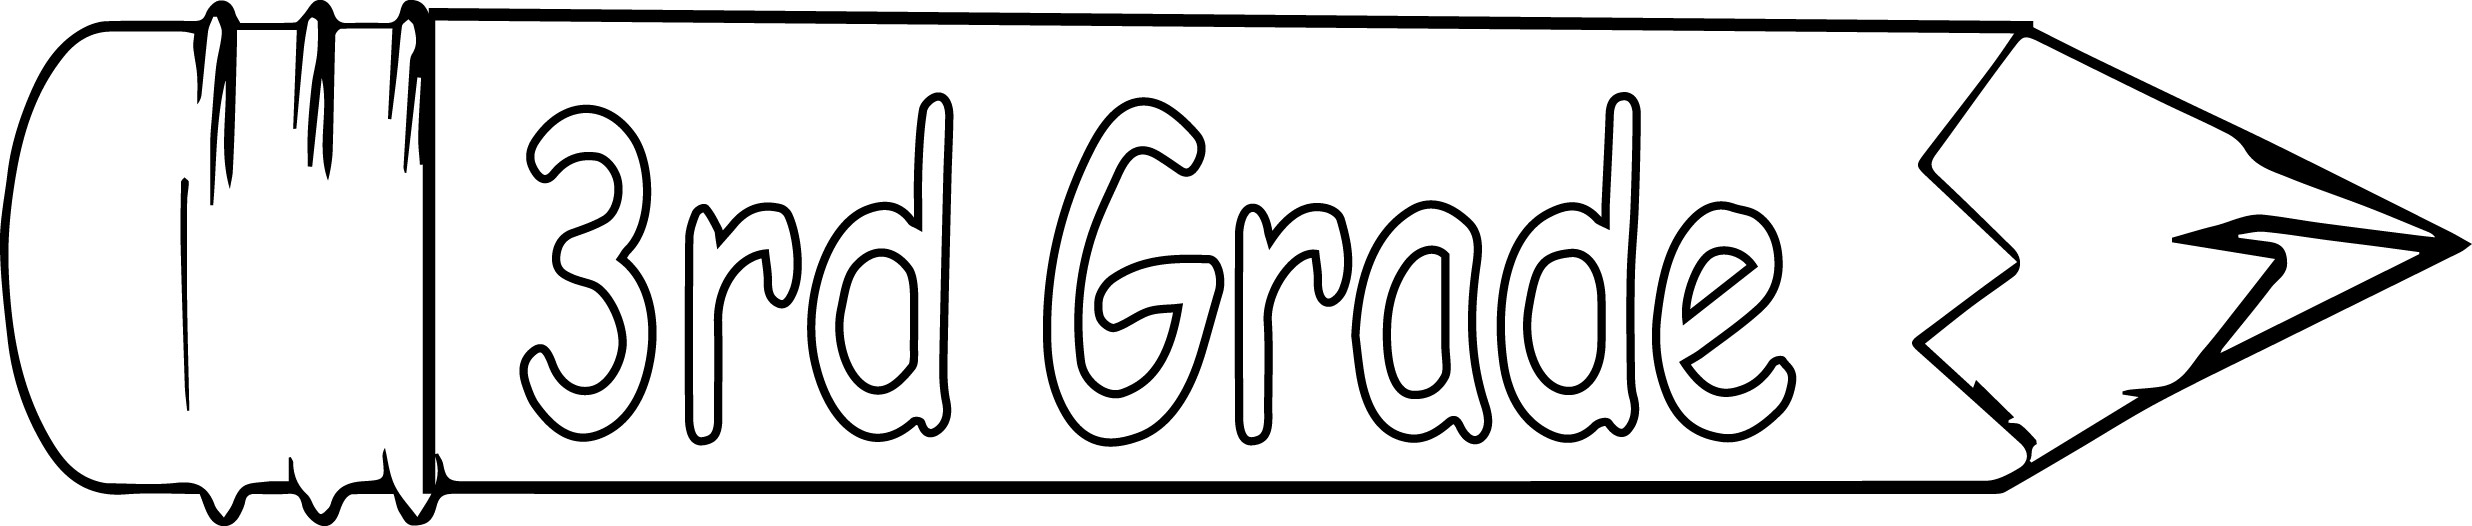 coloring pages 3rd grade 3rd grade coloring pages  coloring pages for kids 3rd coloring pages grade